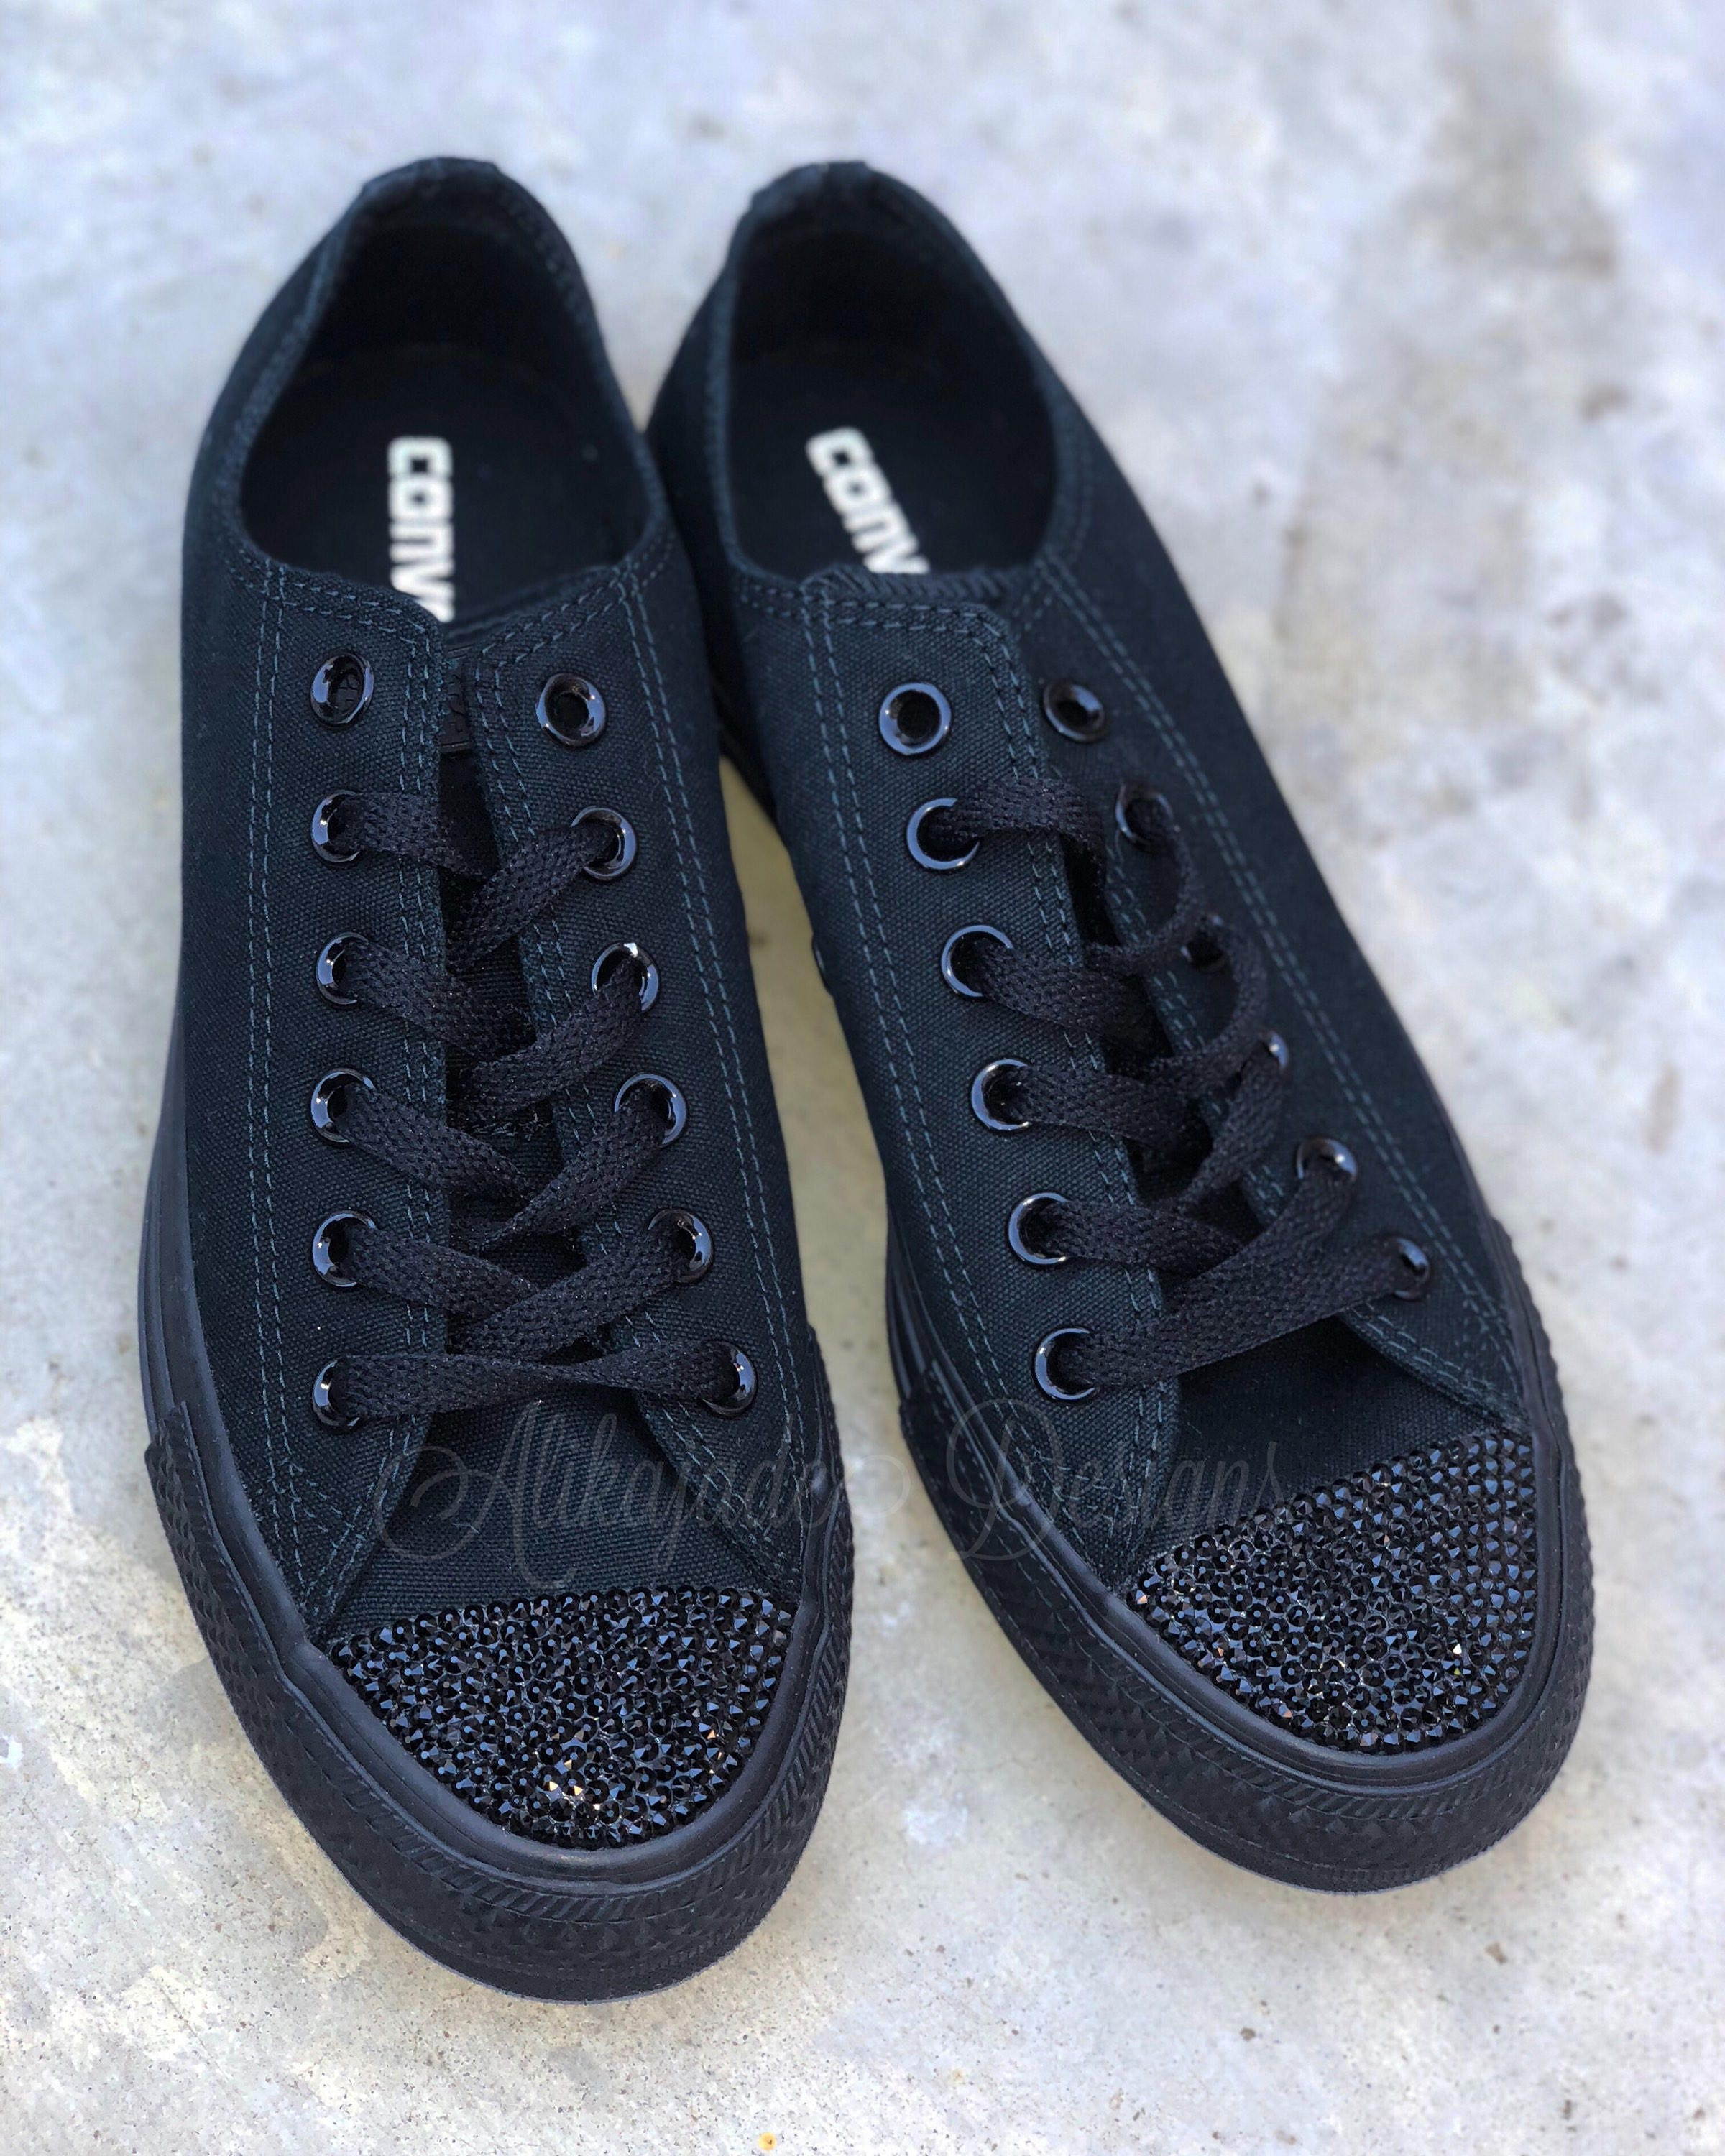 612c82a25e9cdb Swarovski Crystal Black Converse - Crystal Converse - Gift for Her- Bride  Shoe. gallery photo